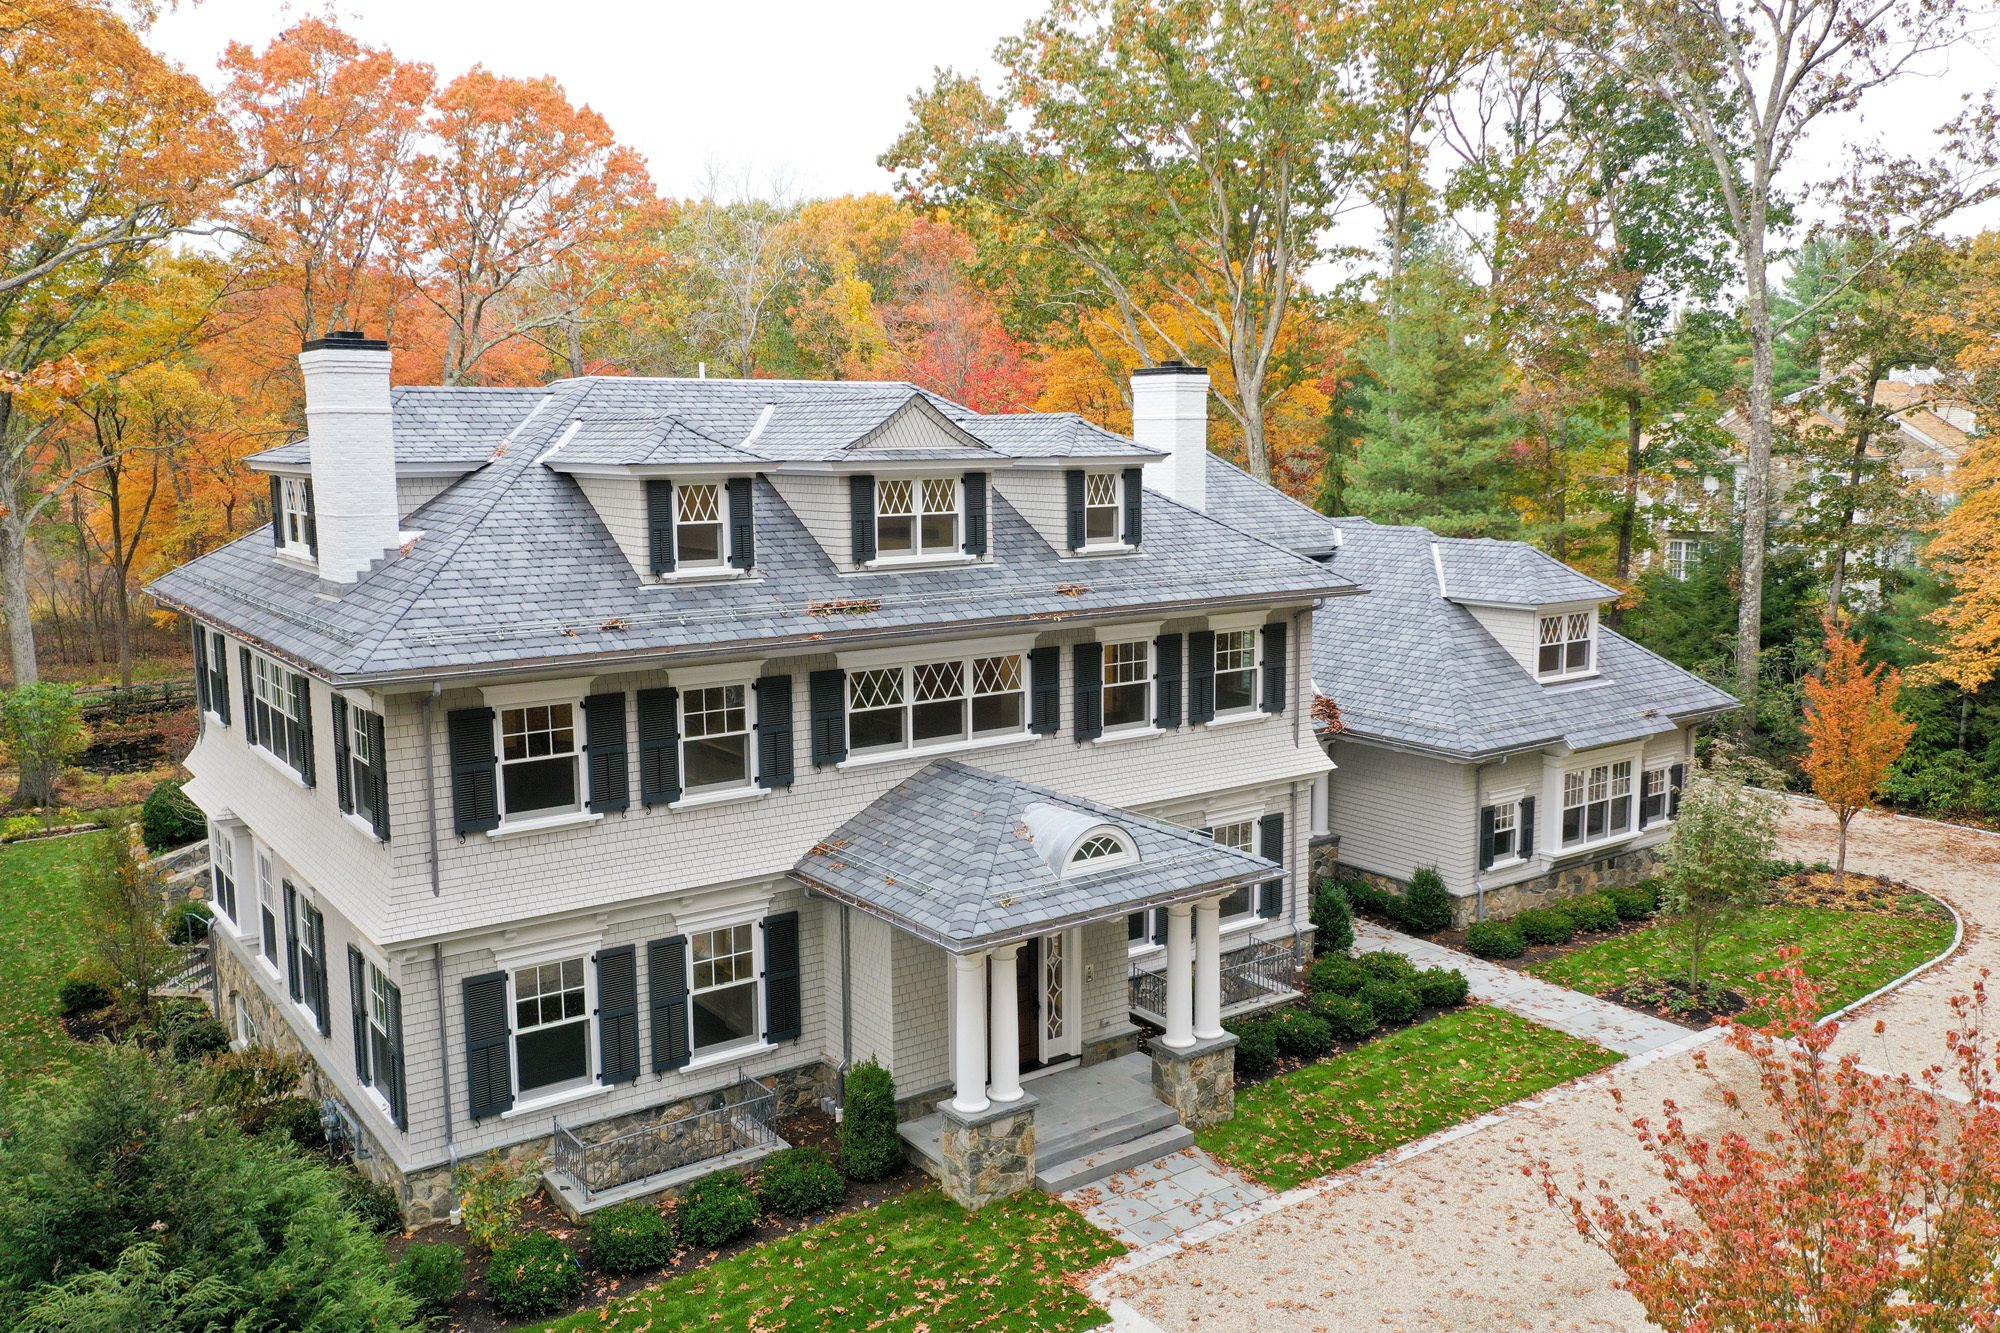 Beautiful custom home with a hip roof portico supported by 4 round columns & stone bases.